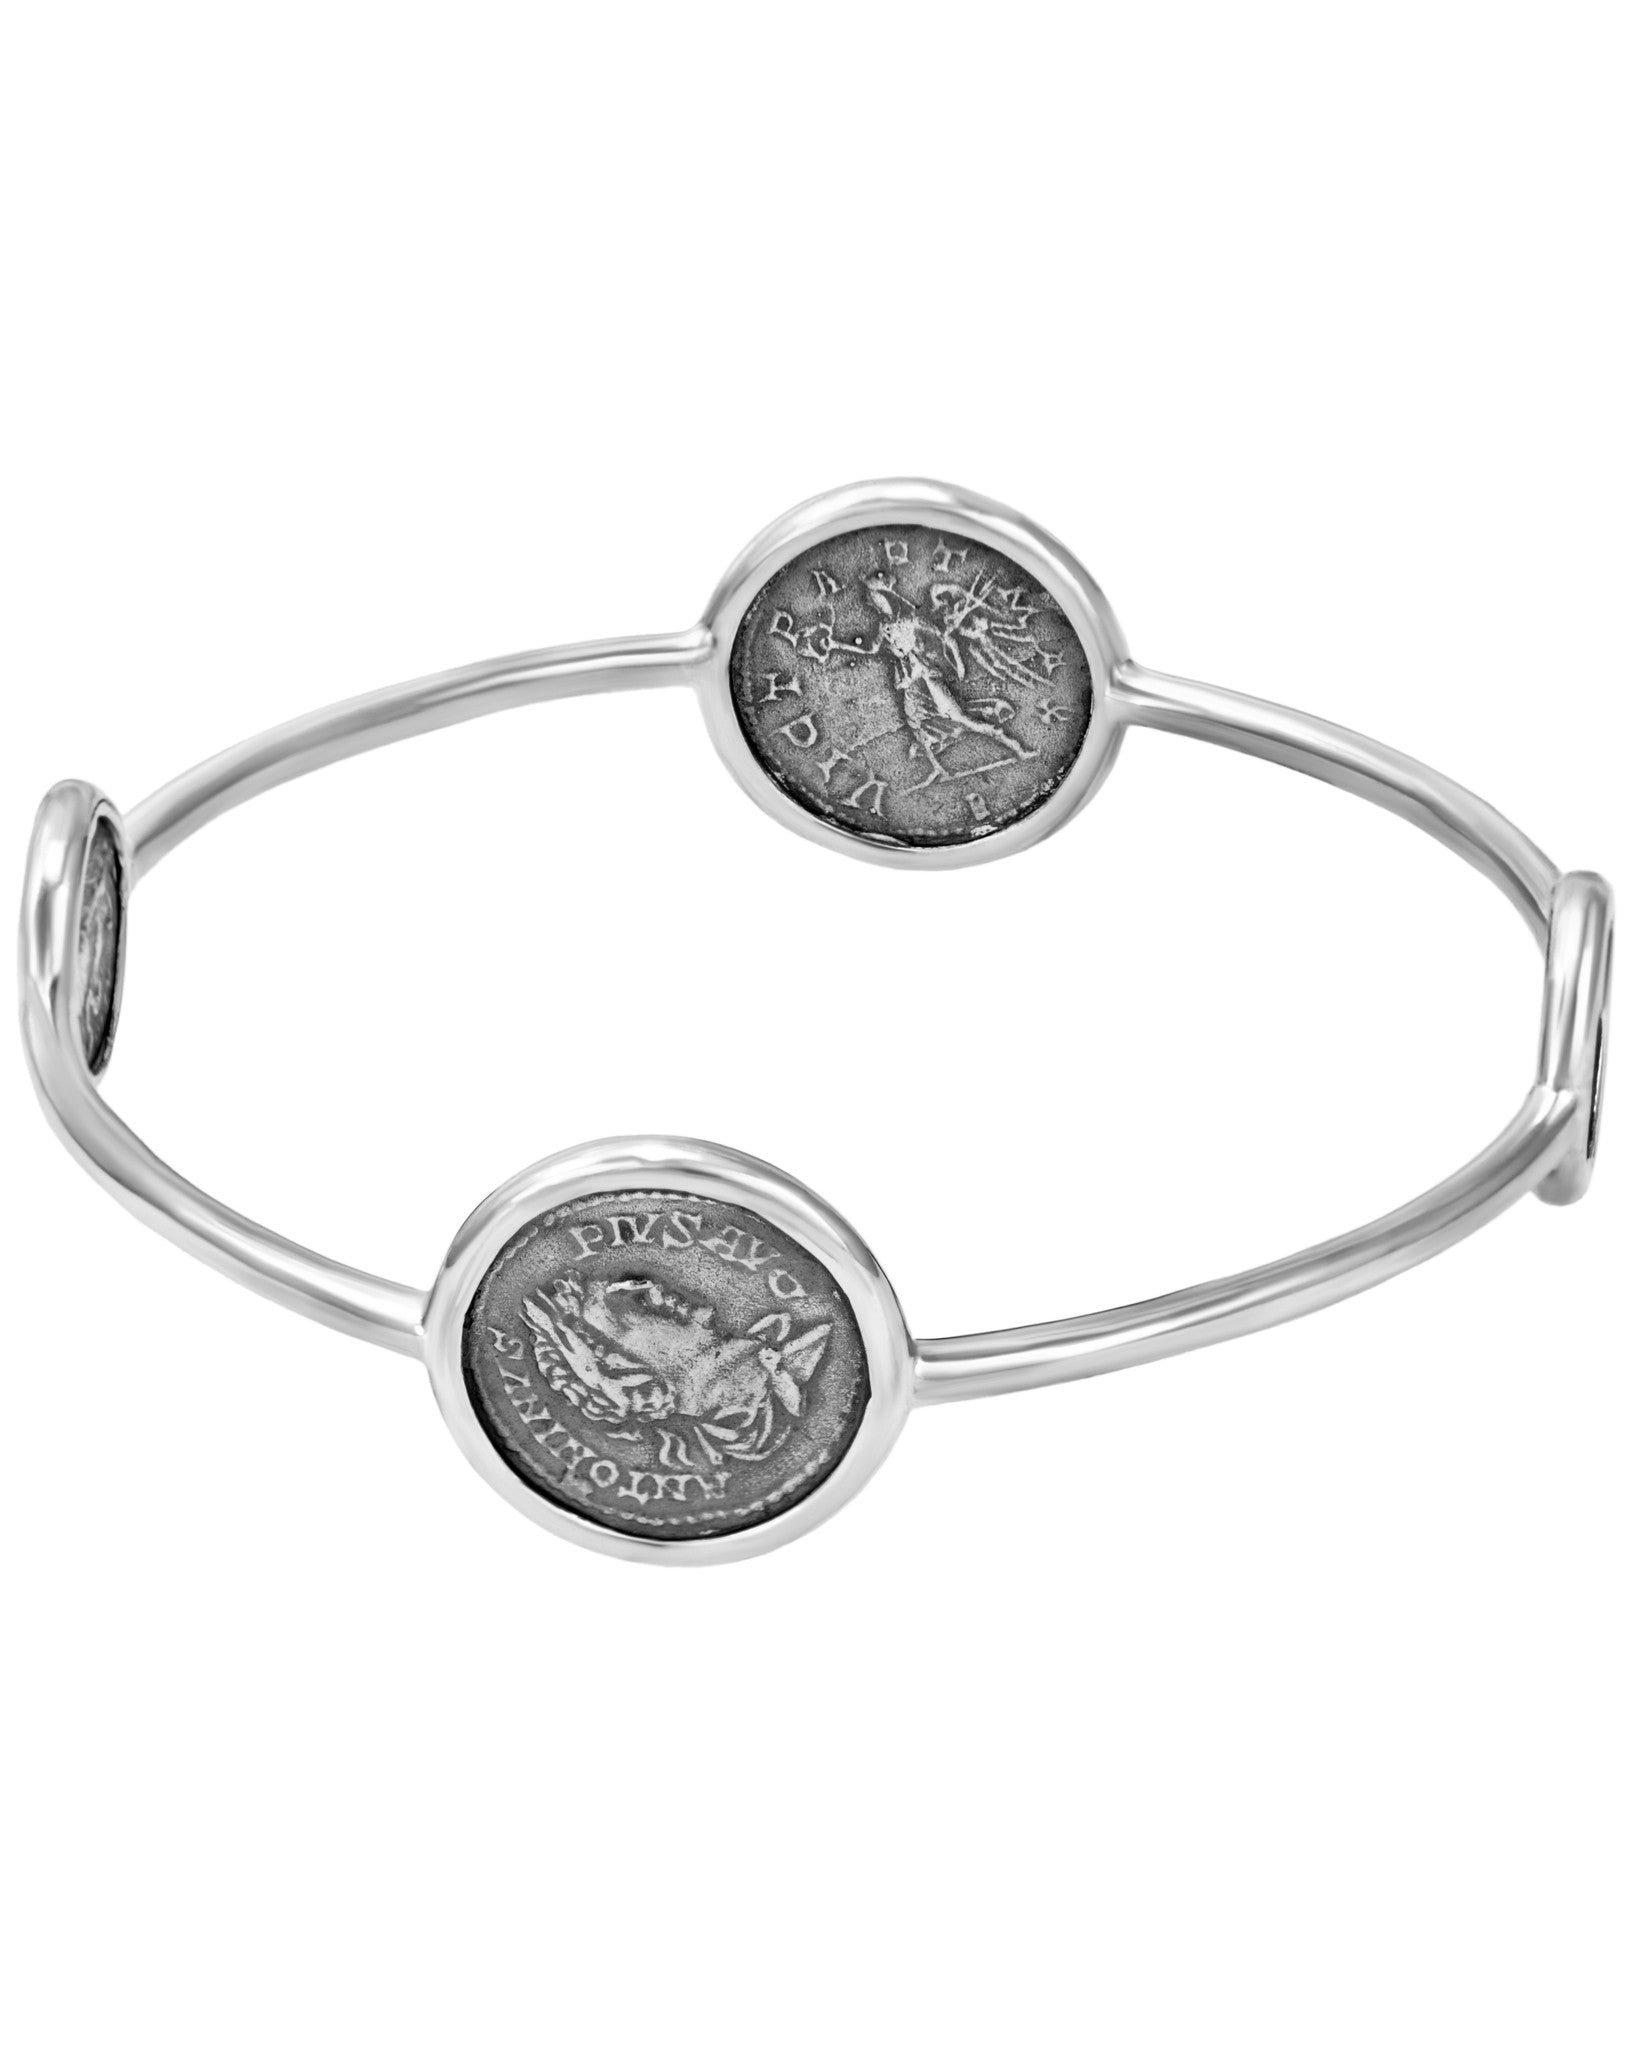 Legacy Vivace Sterling Silver Bangle w/ 2 Small Antique Ottaviano Coins and 2 Medium Antique Pius Coins